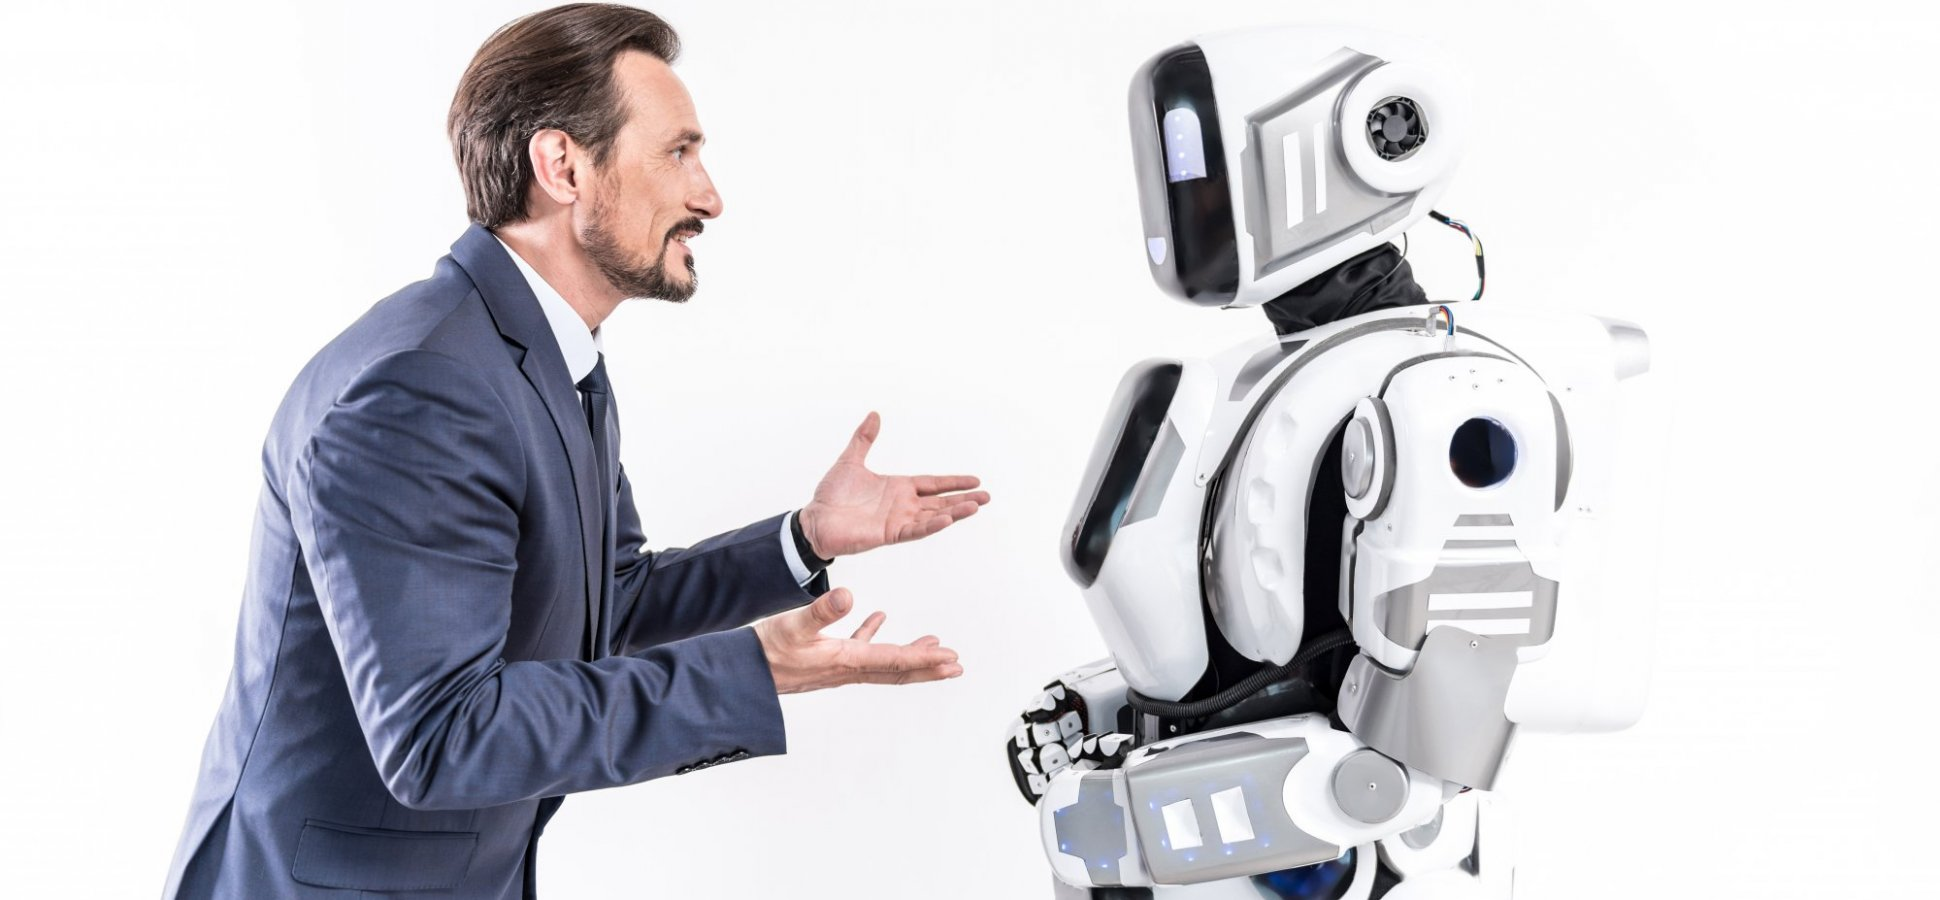 At IBM, Researchers Are Working To Make Robots Engaging Conversationalists